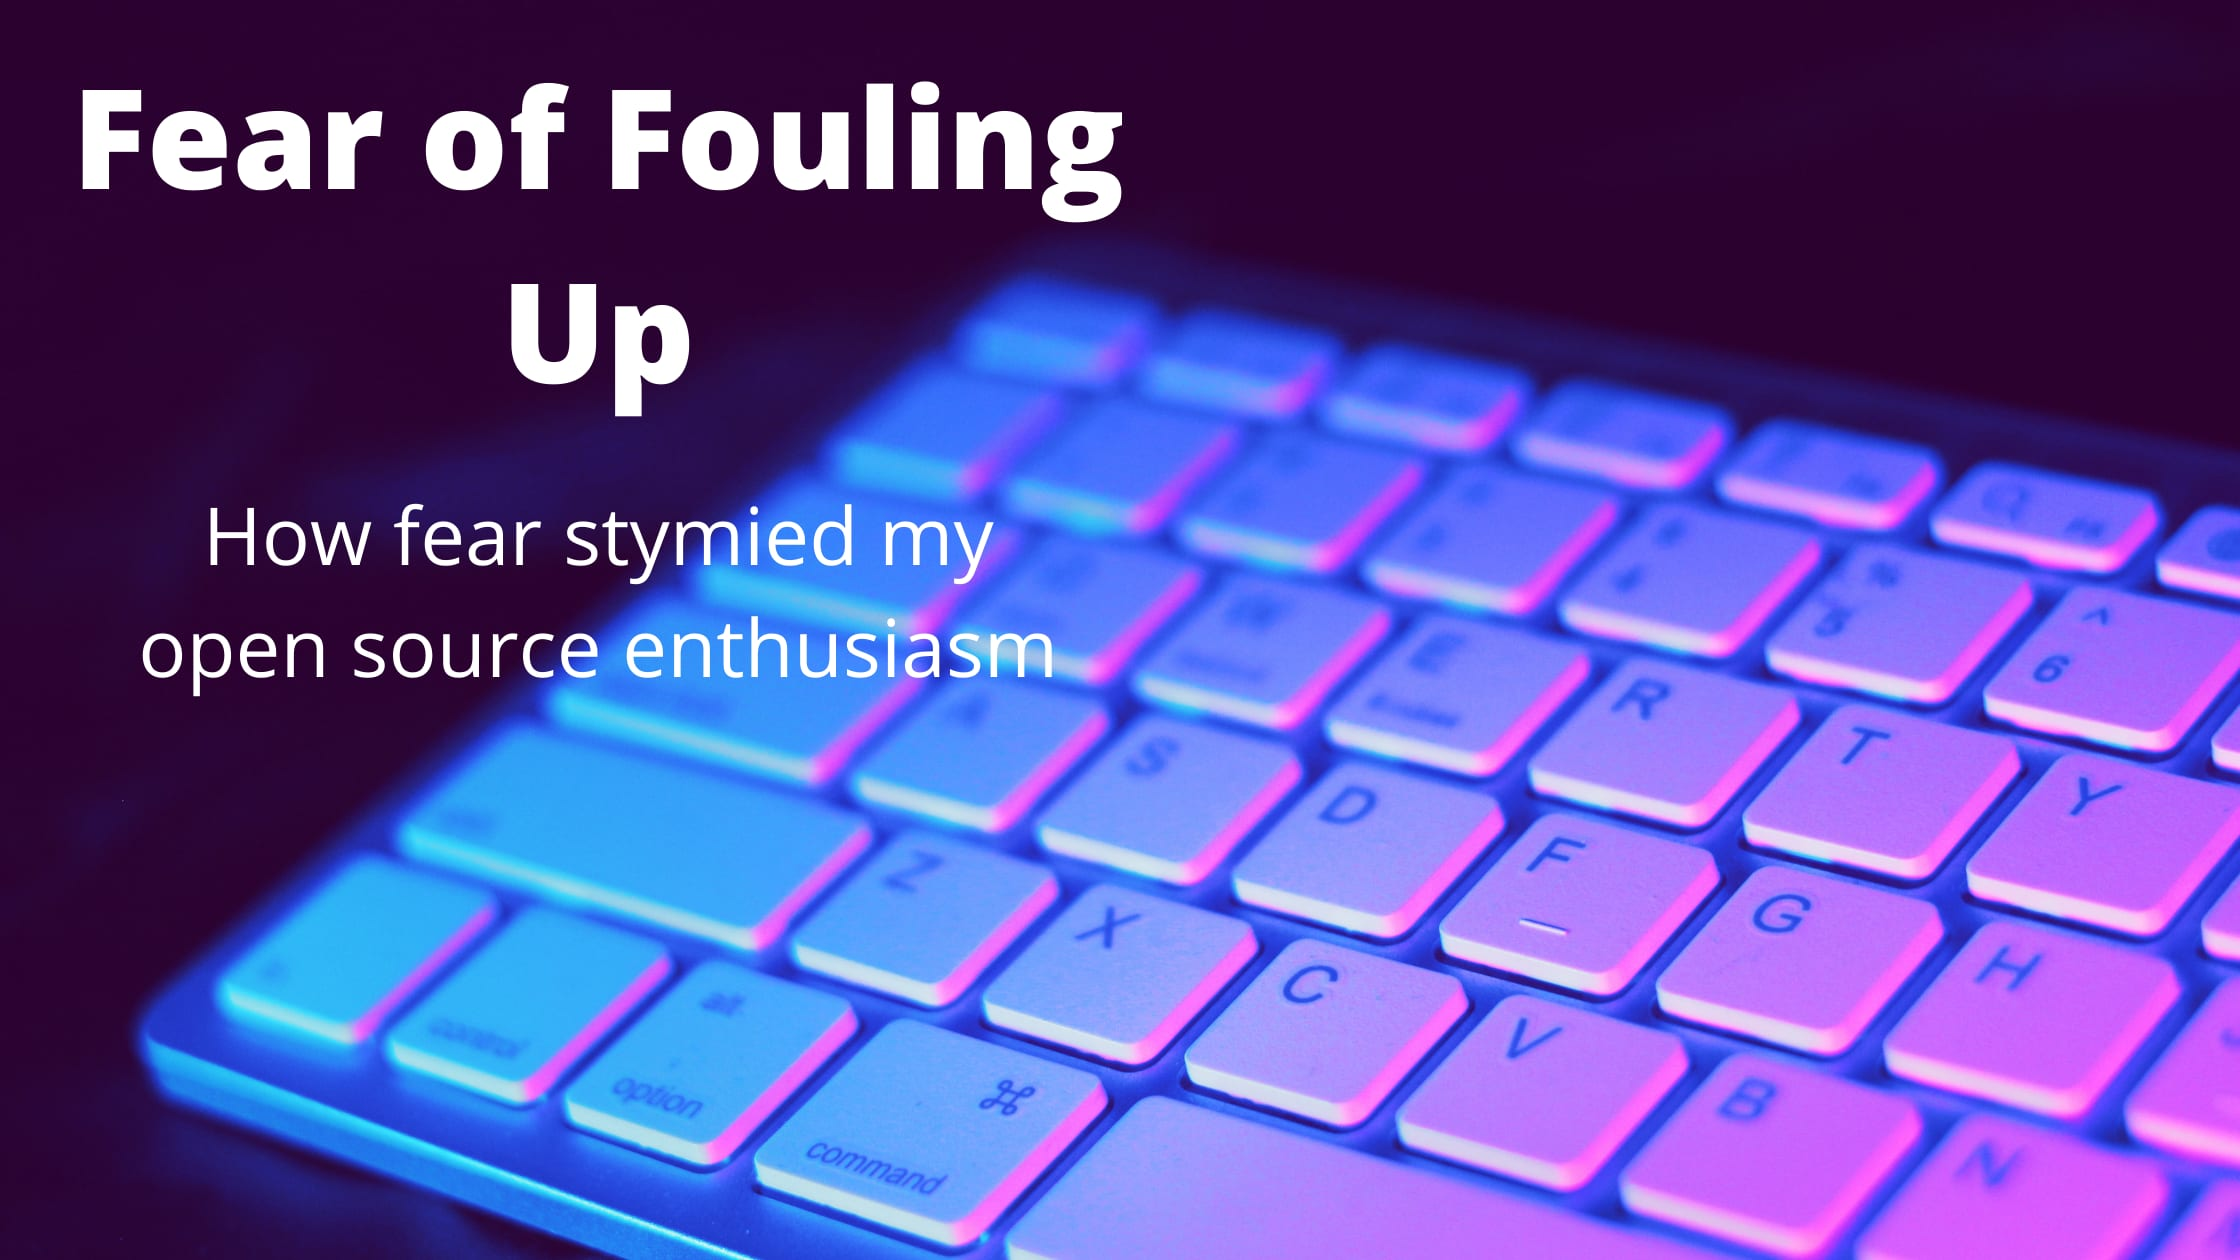 A key board with the title text 'Fear of Fouling Up' and the subtext 'how fear stymied my open source enthusiasm'